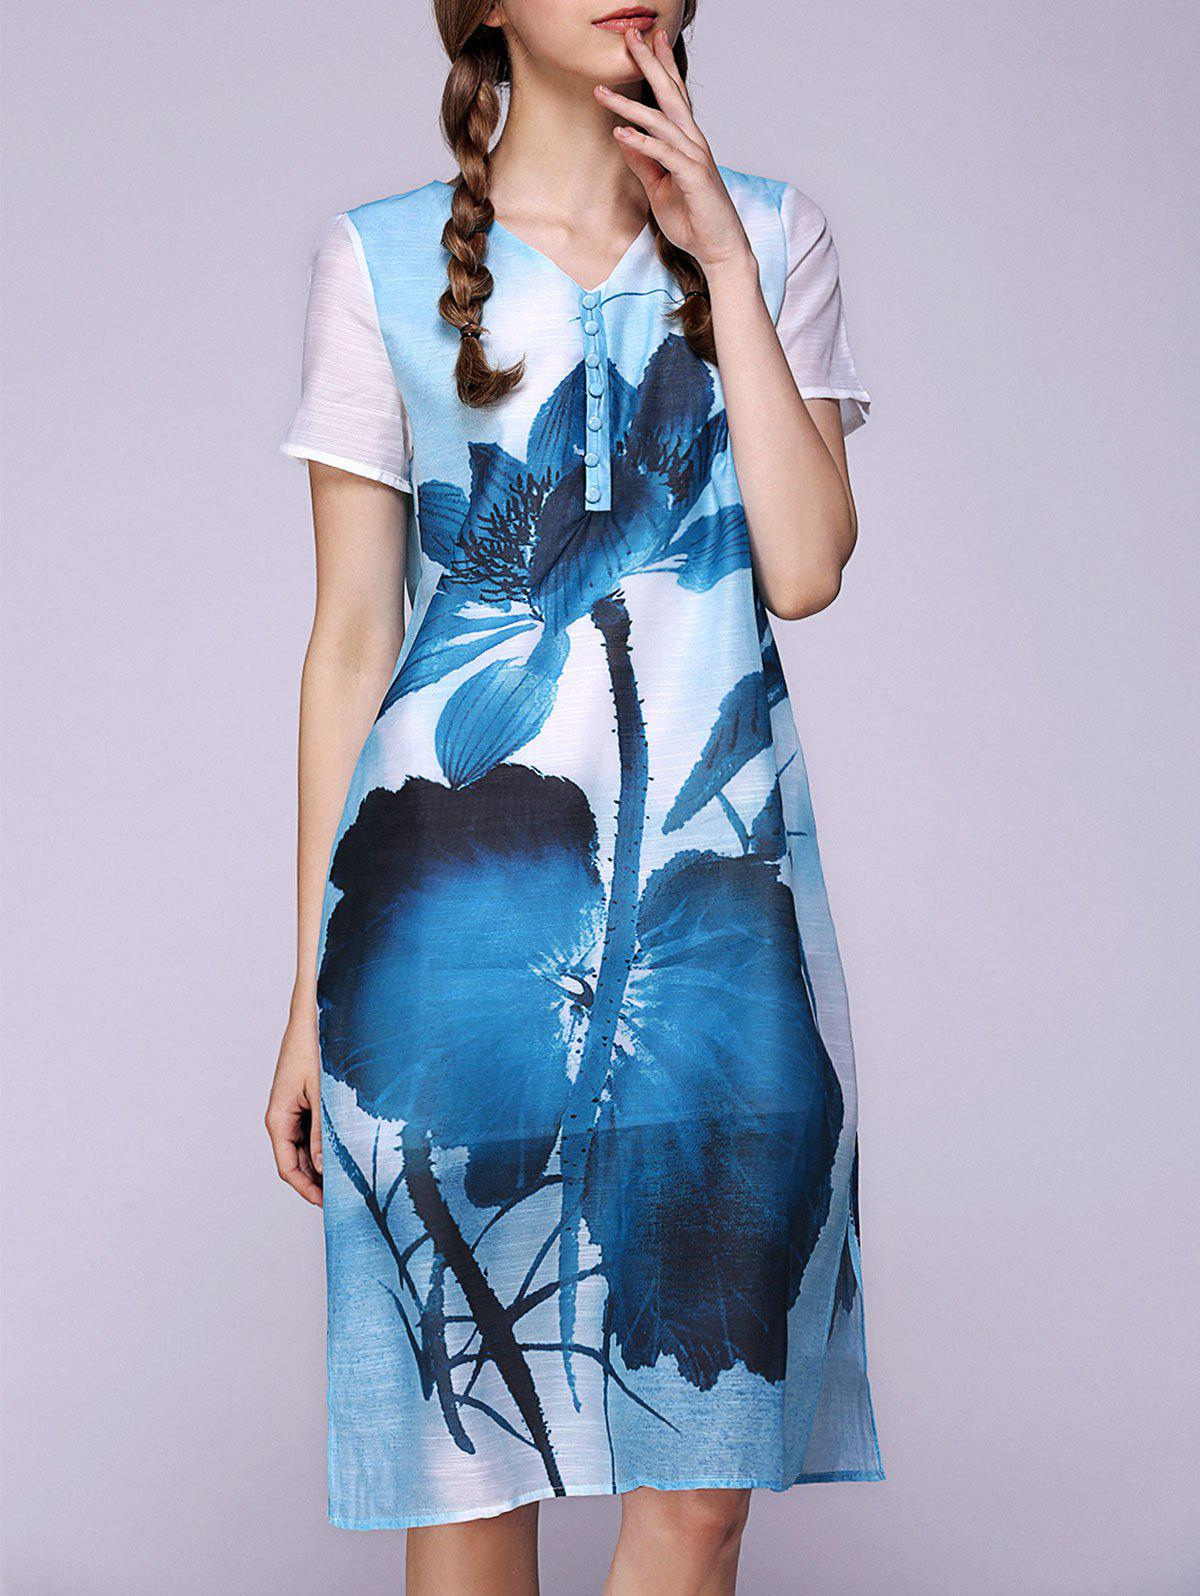 Lotus Flower Ink Painting V Neck Slit Dress